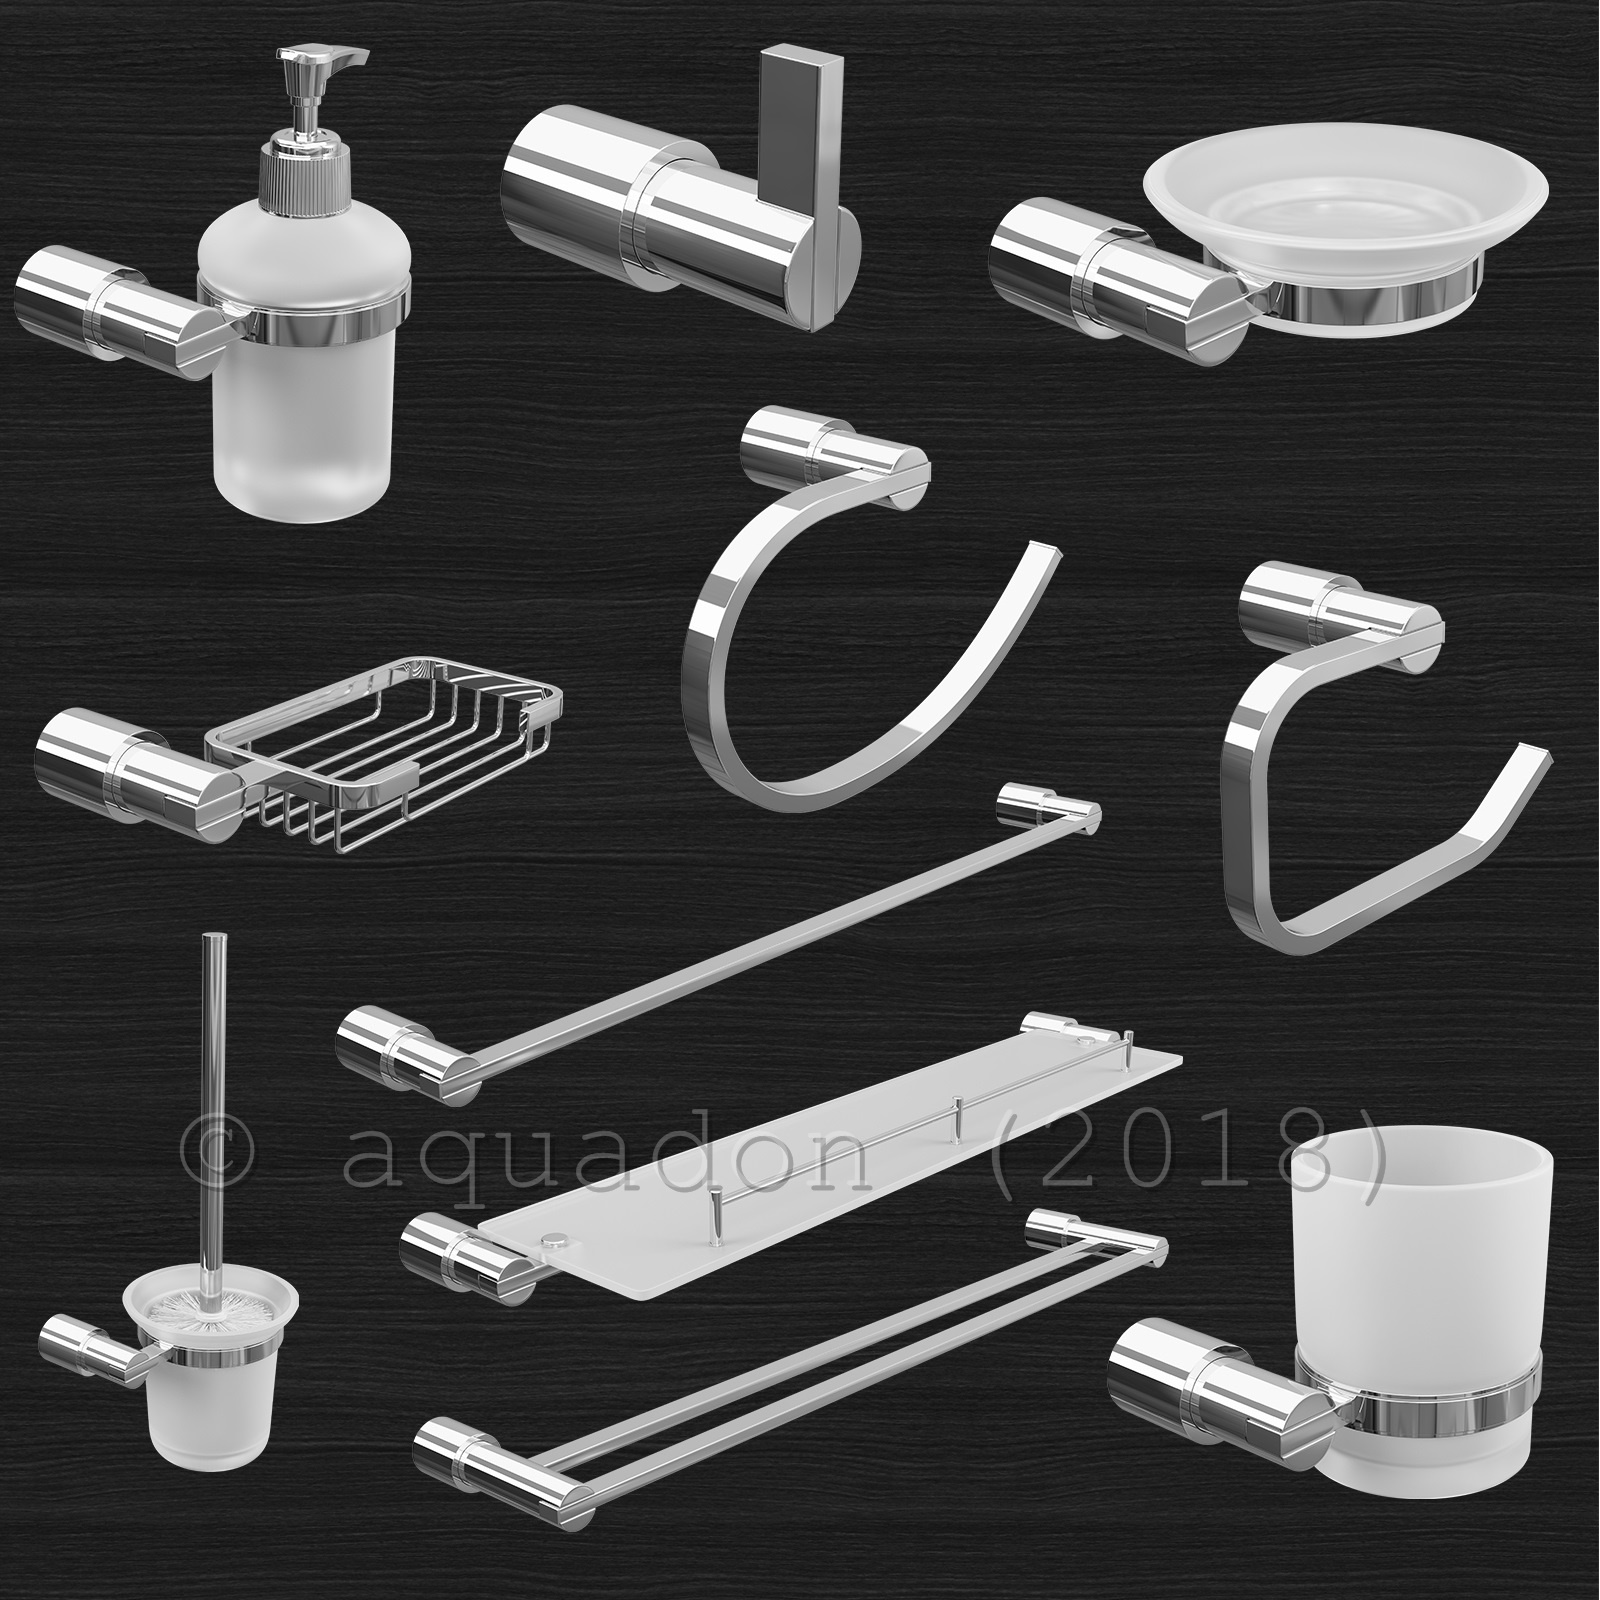 Details about Lilly Modern Bathroom Wall Accessories Set Polished Chrome